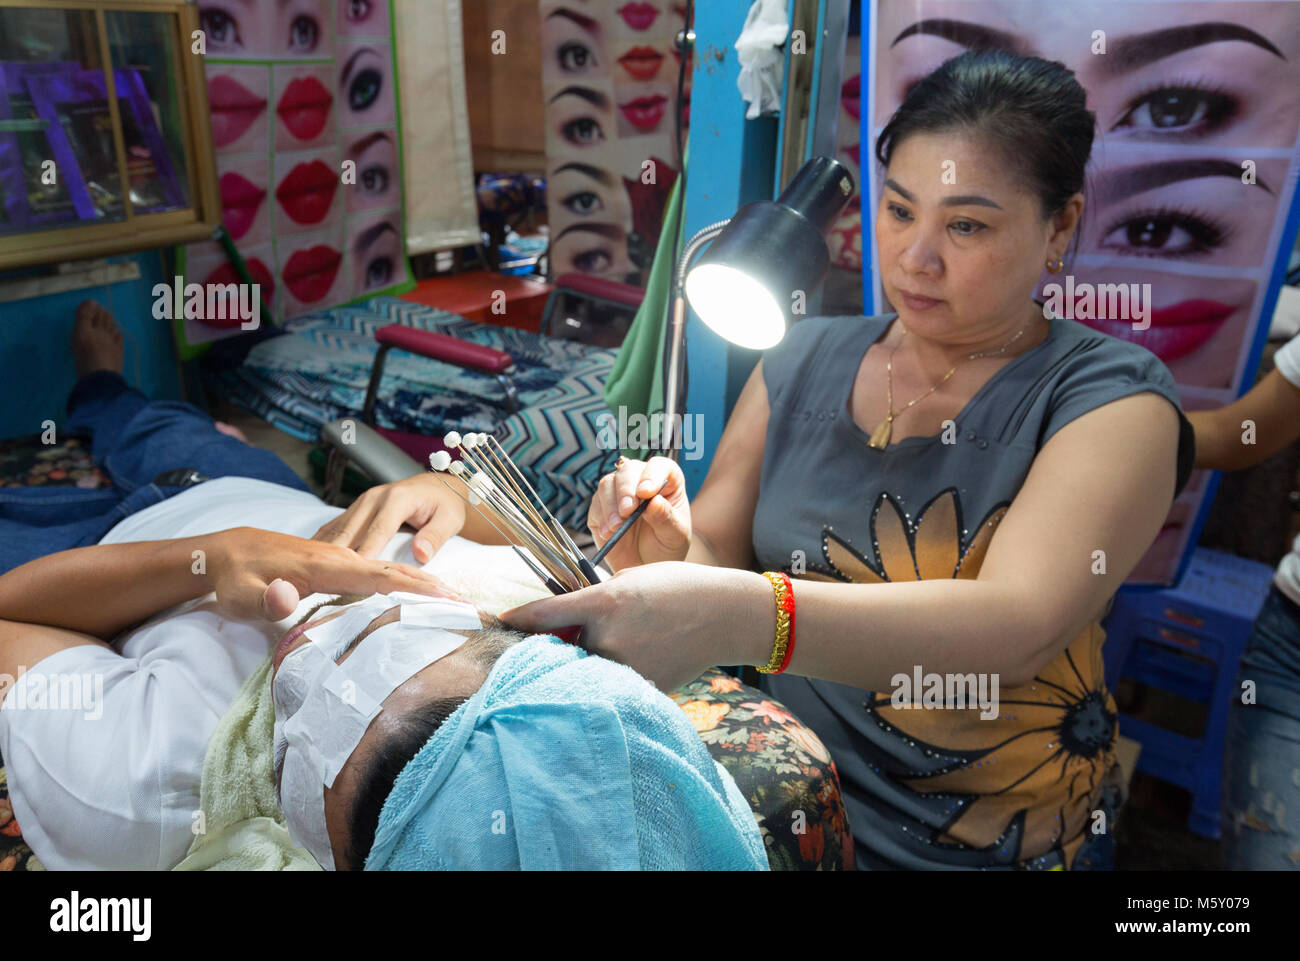 Street beauty therapist doing a facial for a customer, example of Cambodia culture;  Phnom Penh, Cambodia, Asia - Stock Image